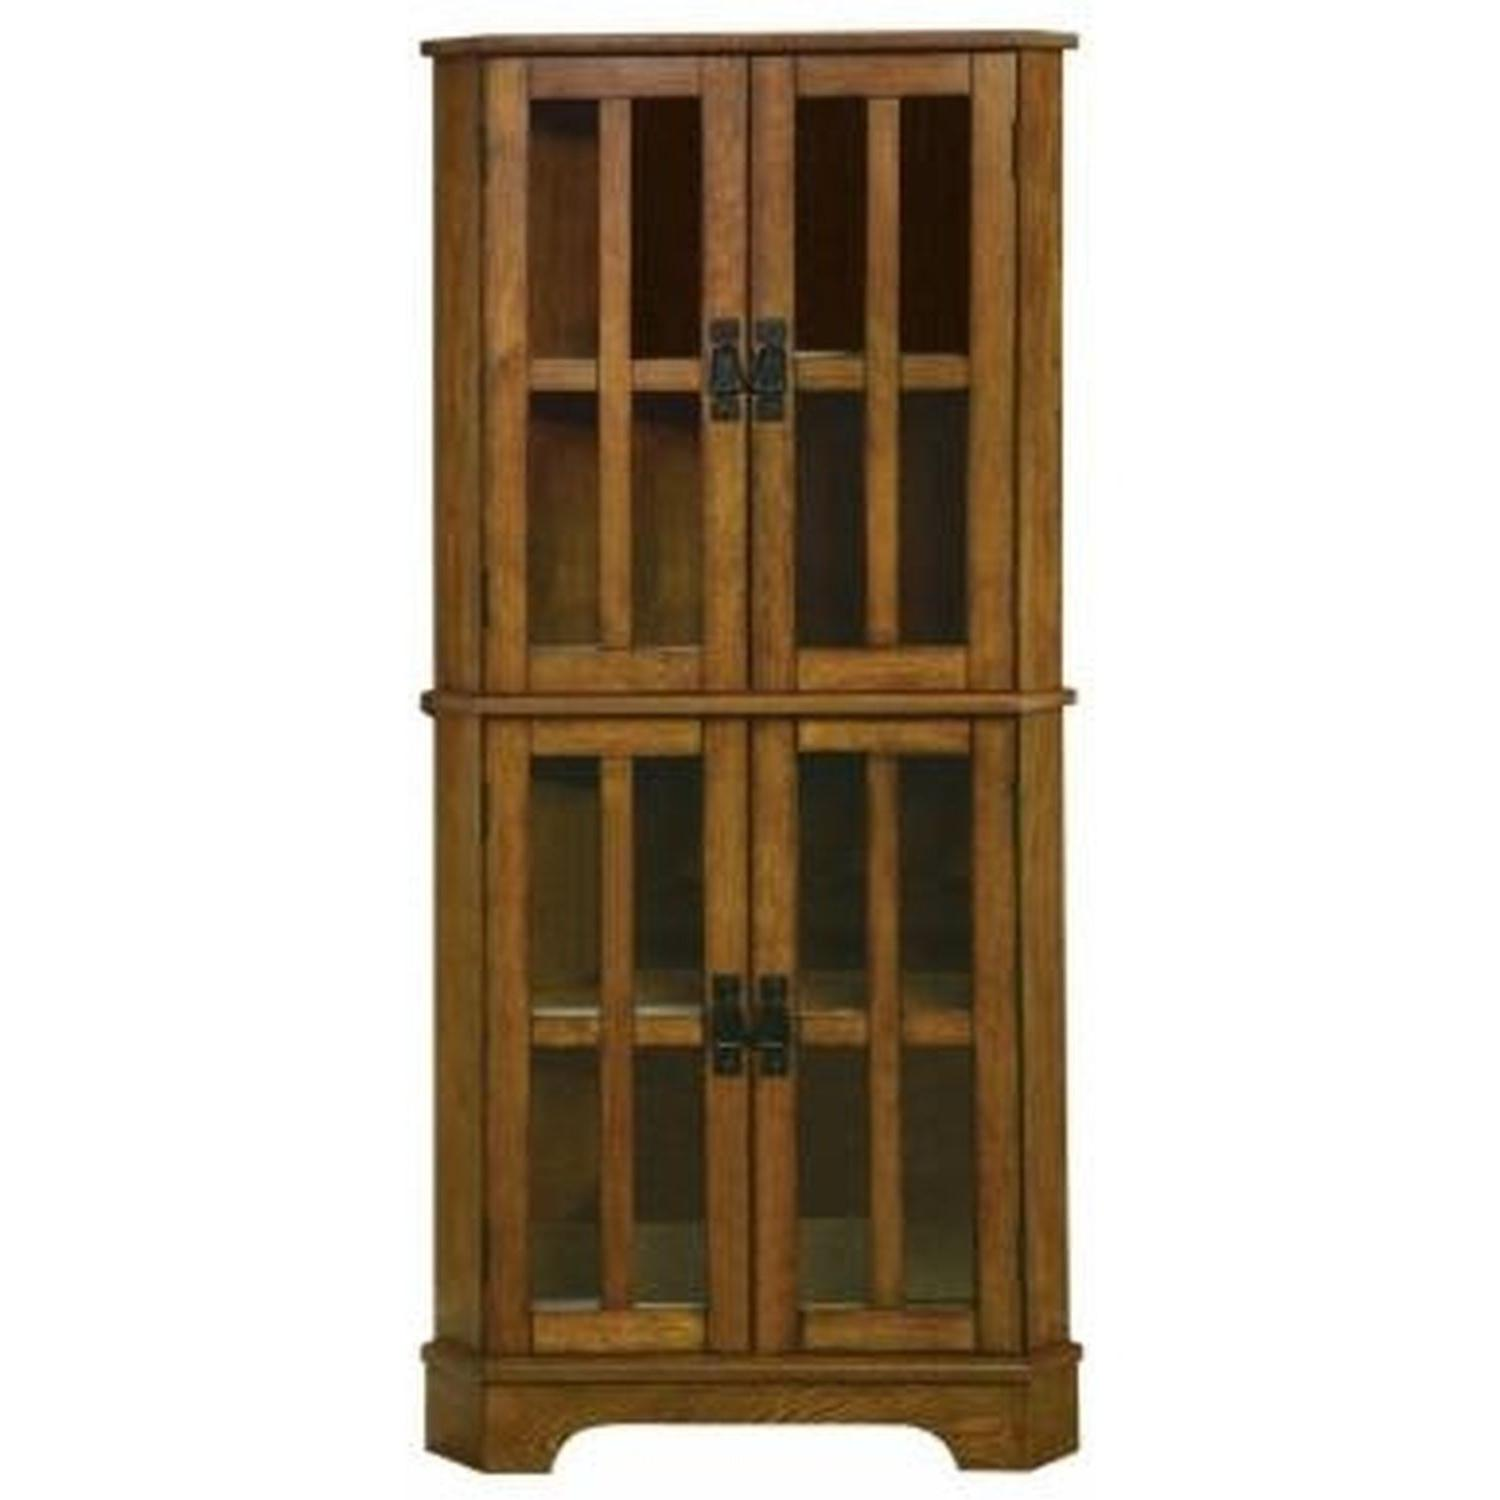 Curio Cabinet in Golden Brown Finish w/ Storage Shelves - image-0